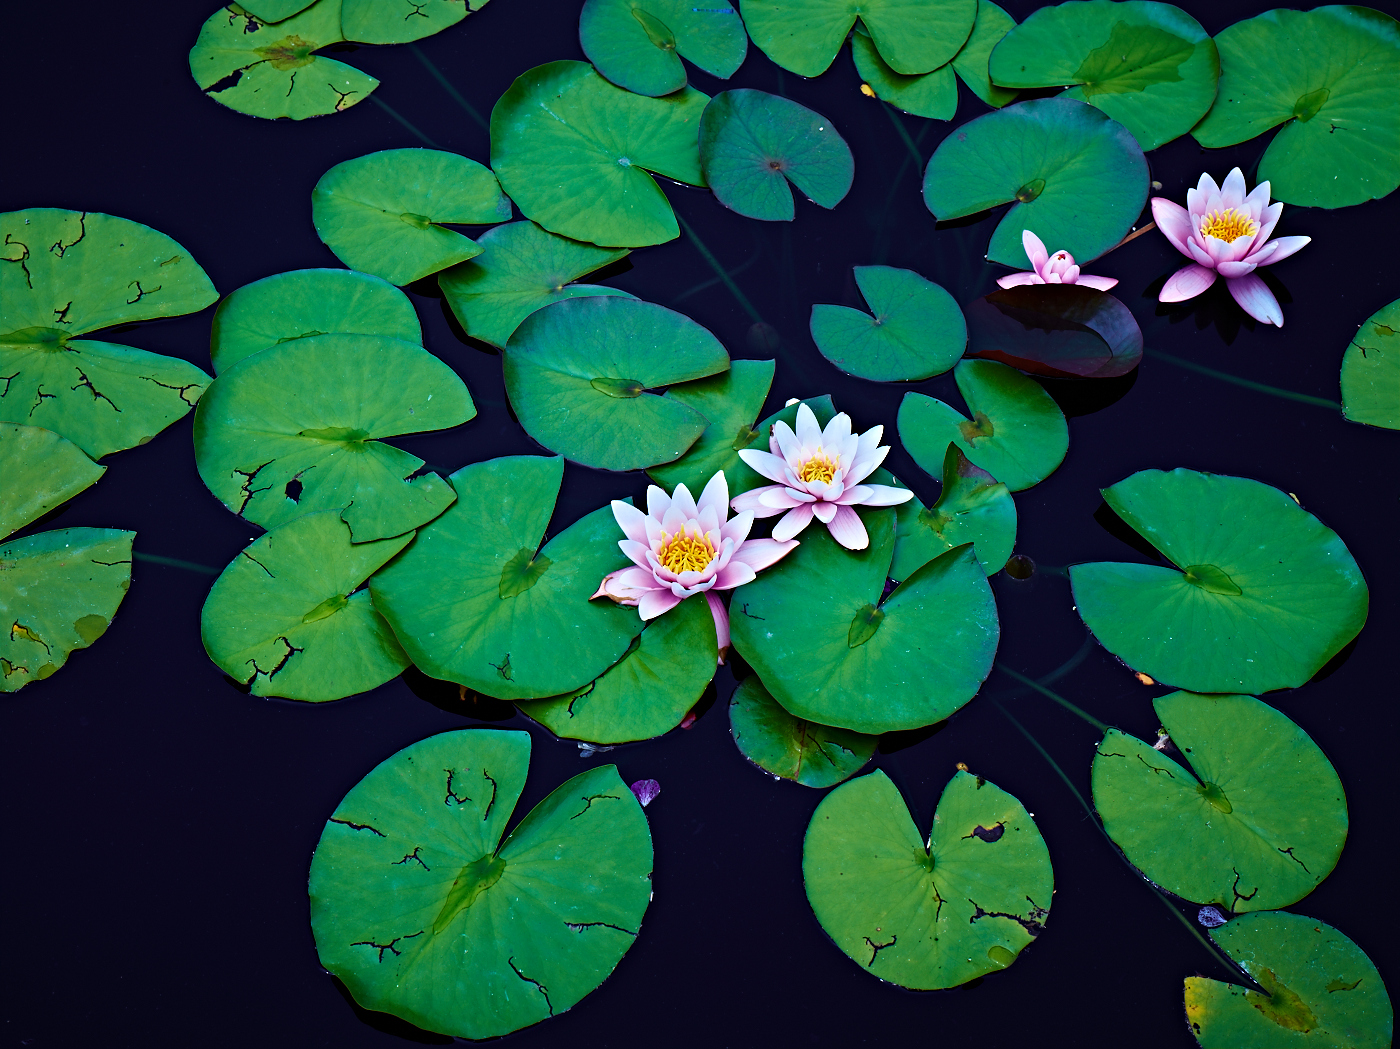 Lily pads peter adams photography lily pads izmirmasajfo Images